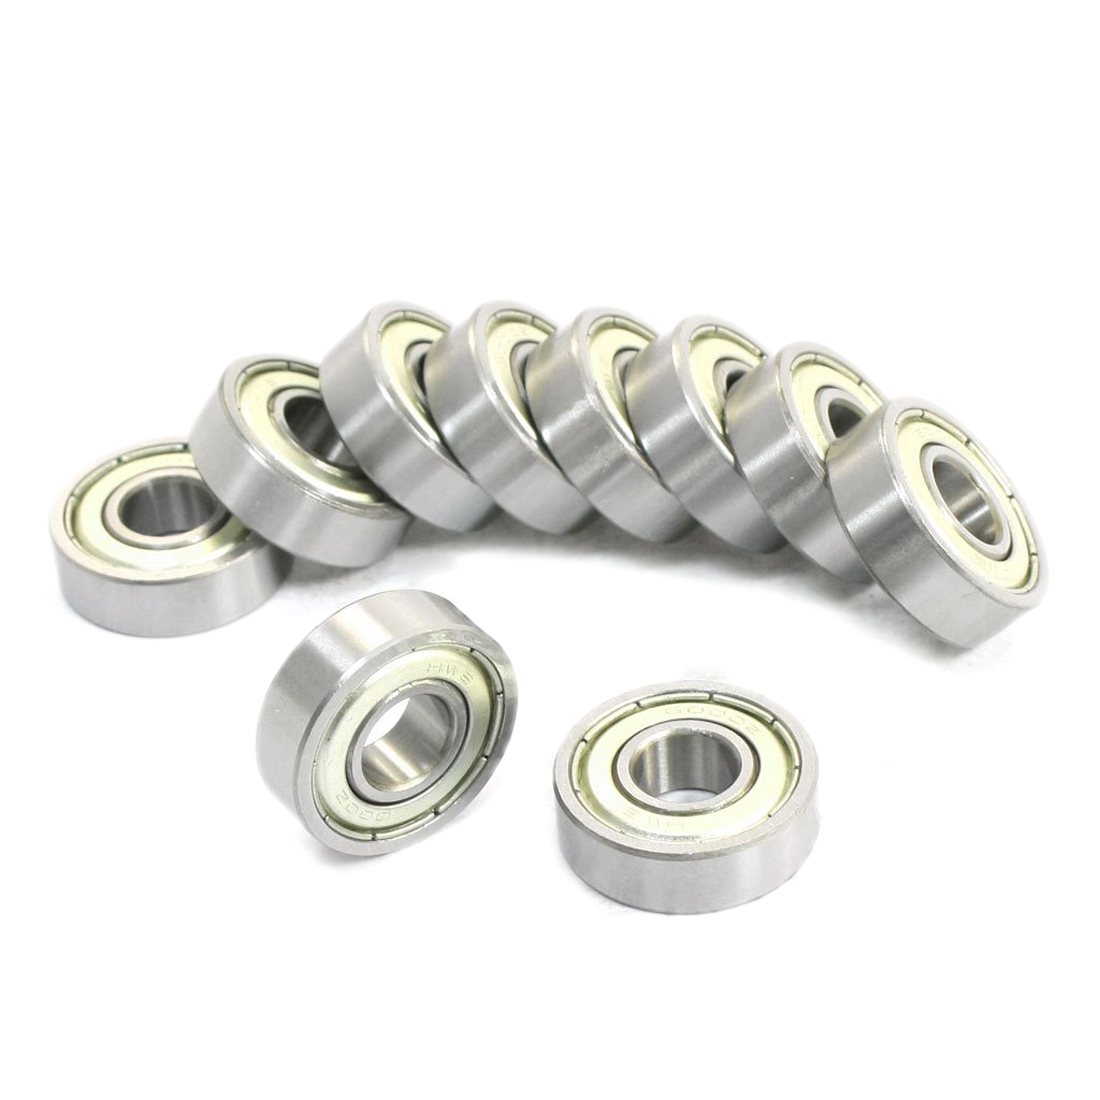 6000Z 10mm x 26mm x 8mm Sealed Deep Groove Radial Ball Bearings 10 Pcs 5 pcs double sealed 3 x 7 x 3mm deep groove ball bearings page 4